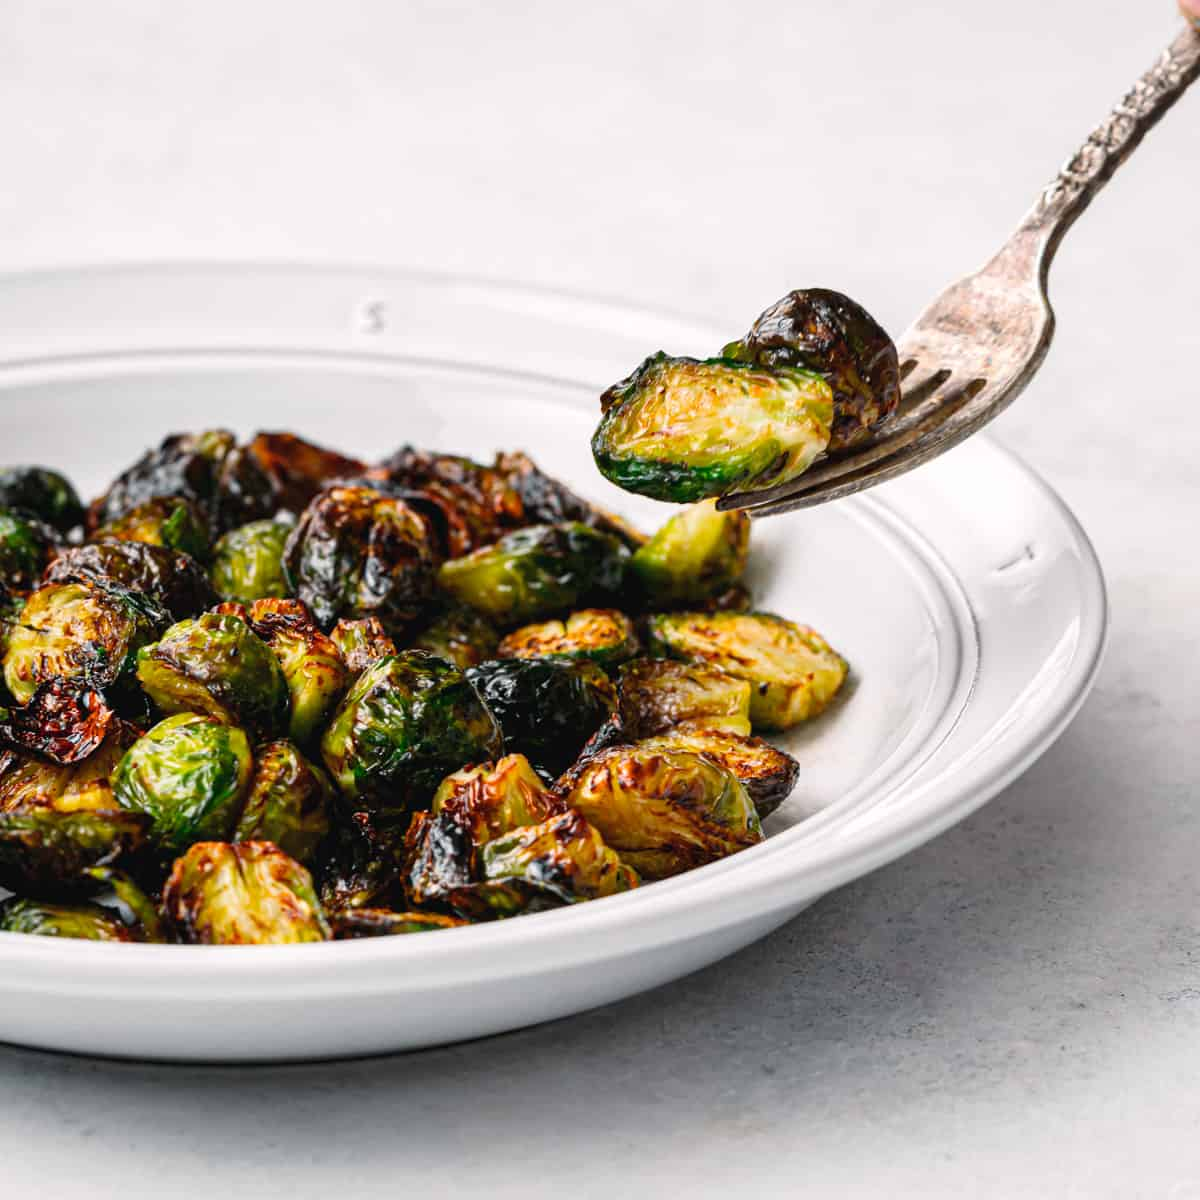 Crispy Brussels Sprouts with Balsamic Vinegar